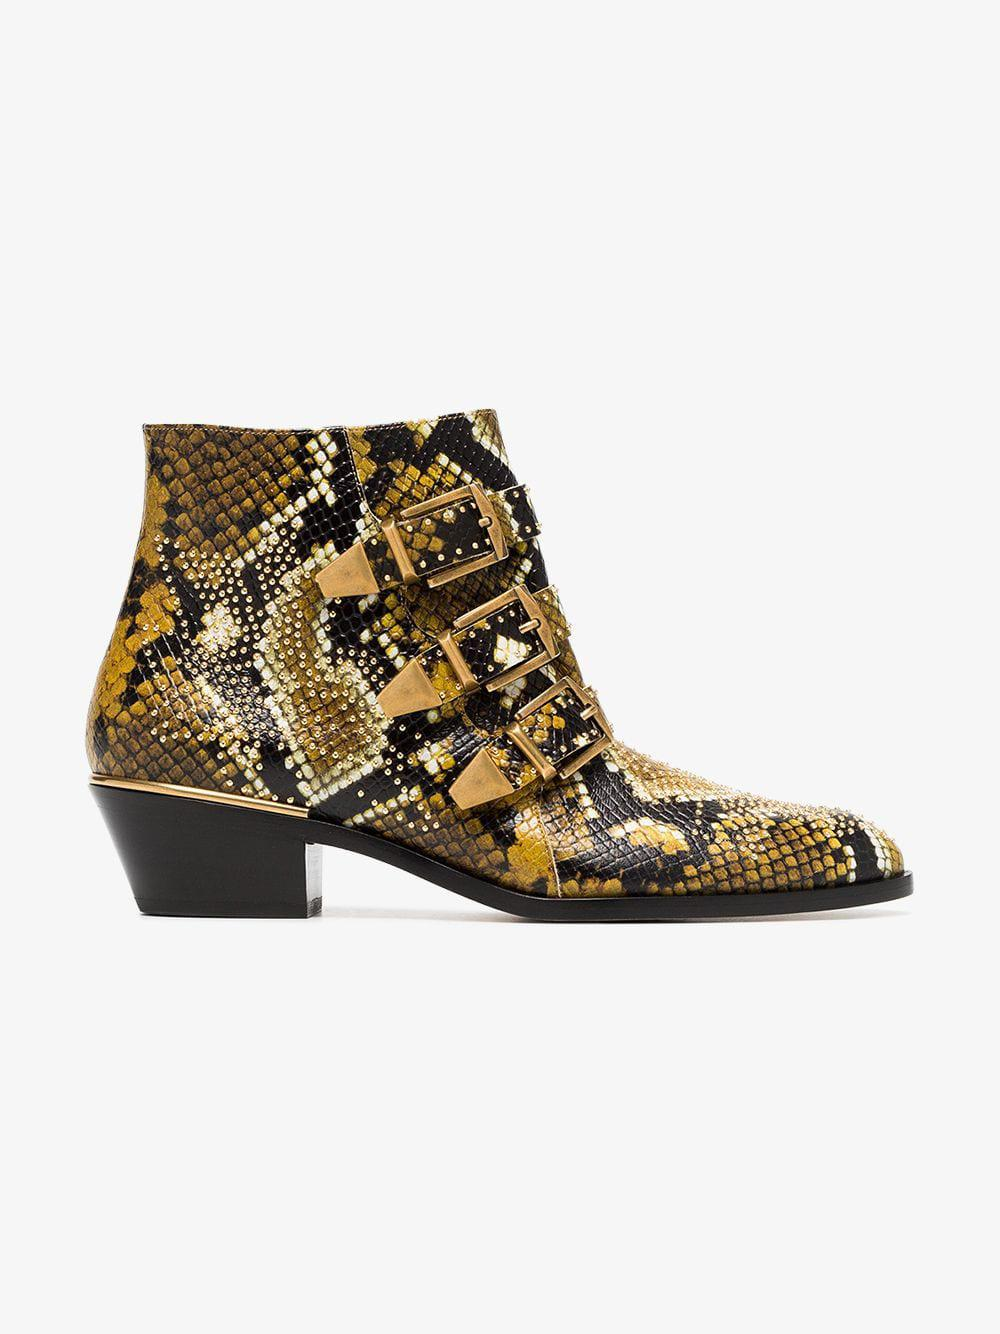 Chloé Leather Susanna Python Ankle Boots in Black